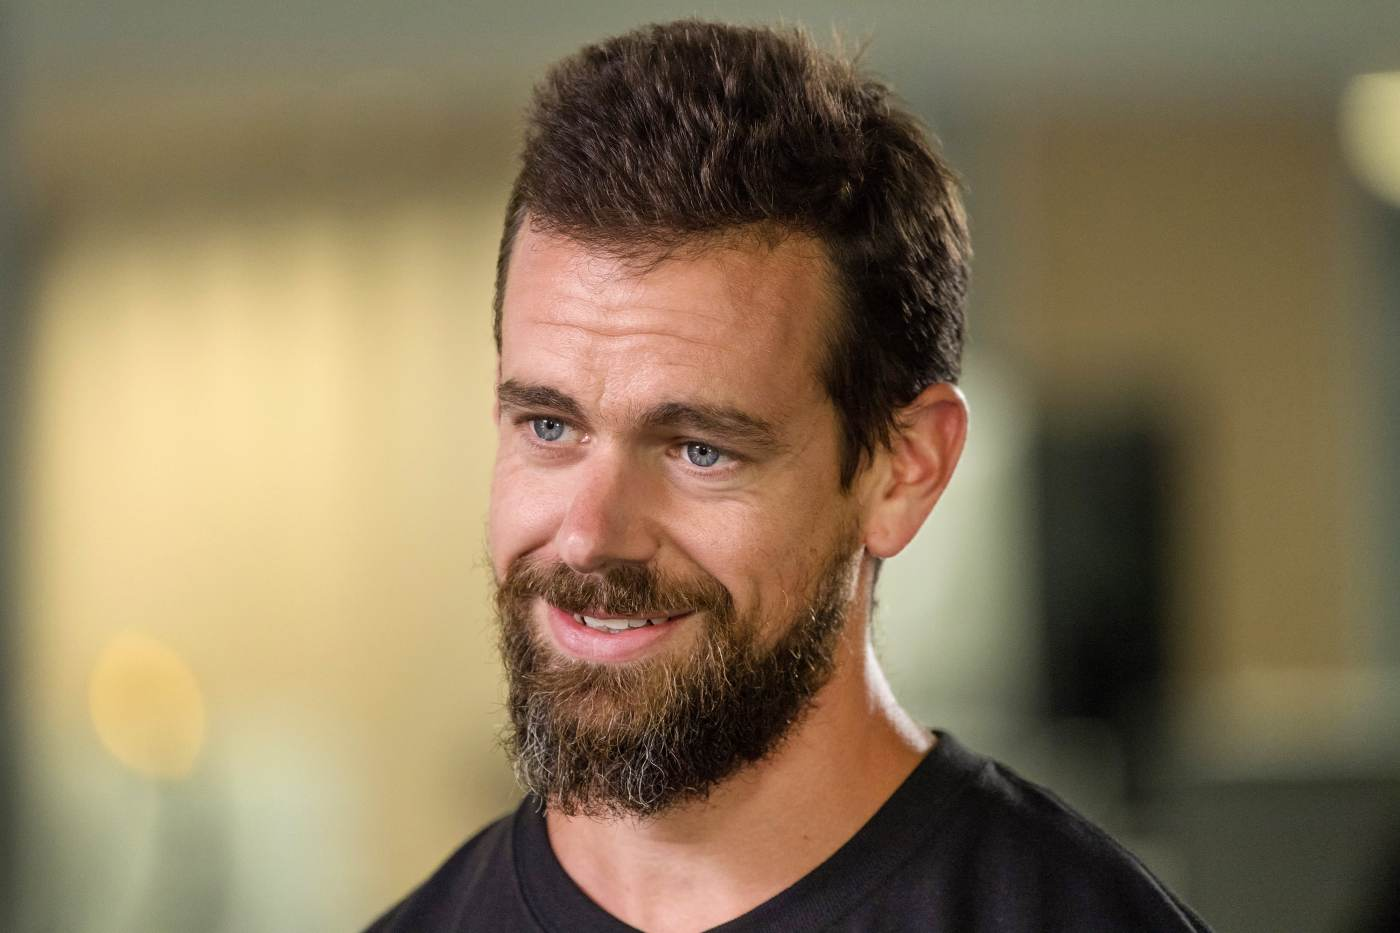 Twitter Ceo Jack Dorsey Spent His Birthday On A Silent